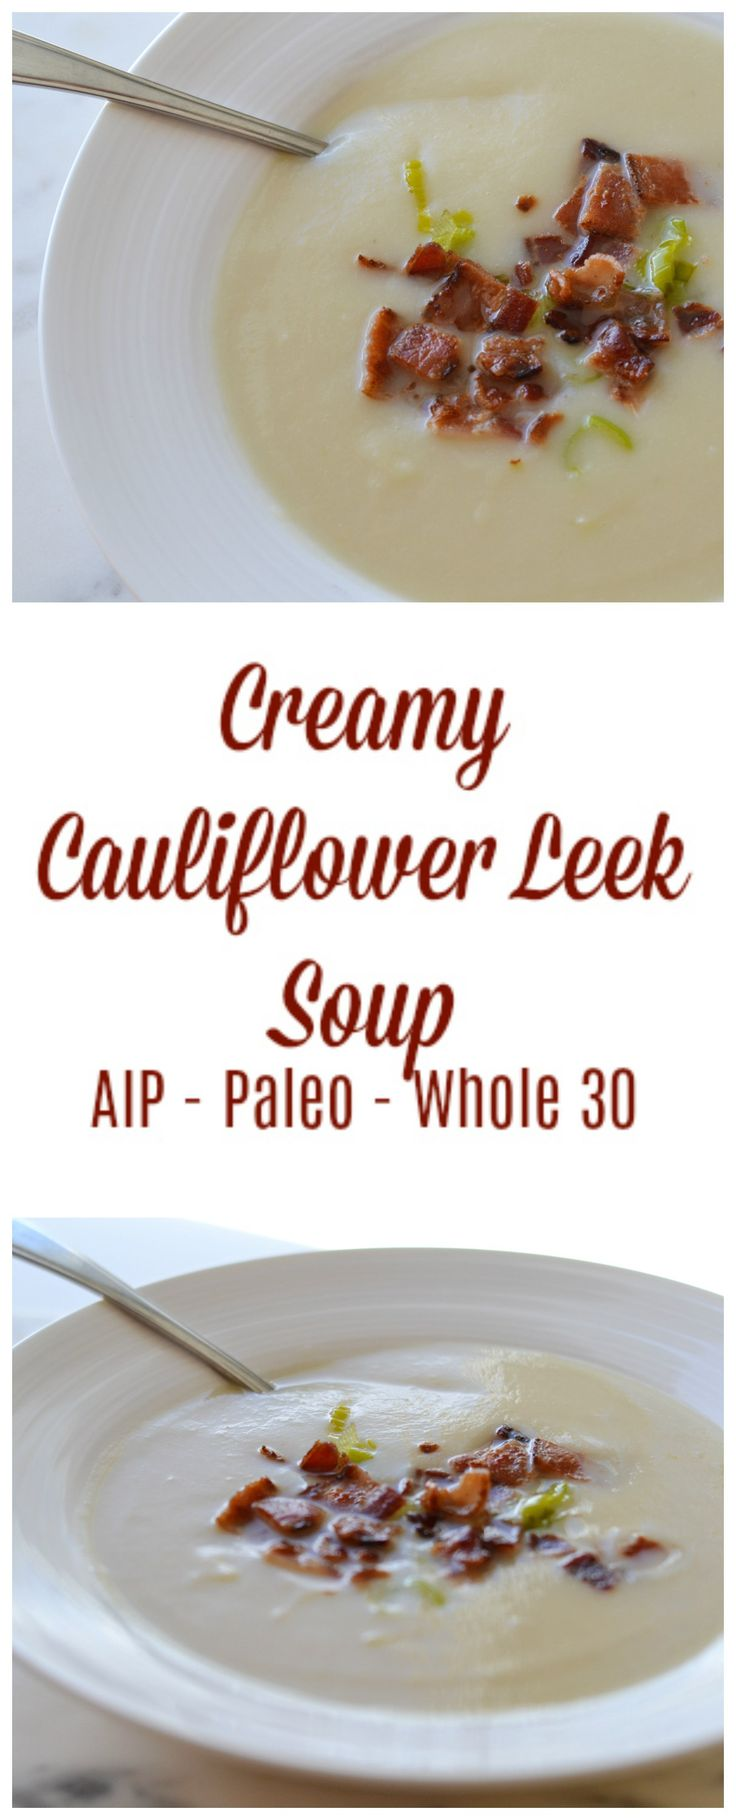 Creamy Cauliflower Leek Soup (AIP/Paleo/Whole 30) | Lichen Paleo, Loving AIP